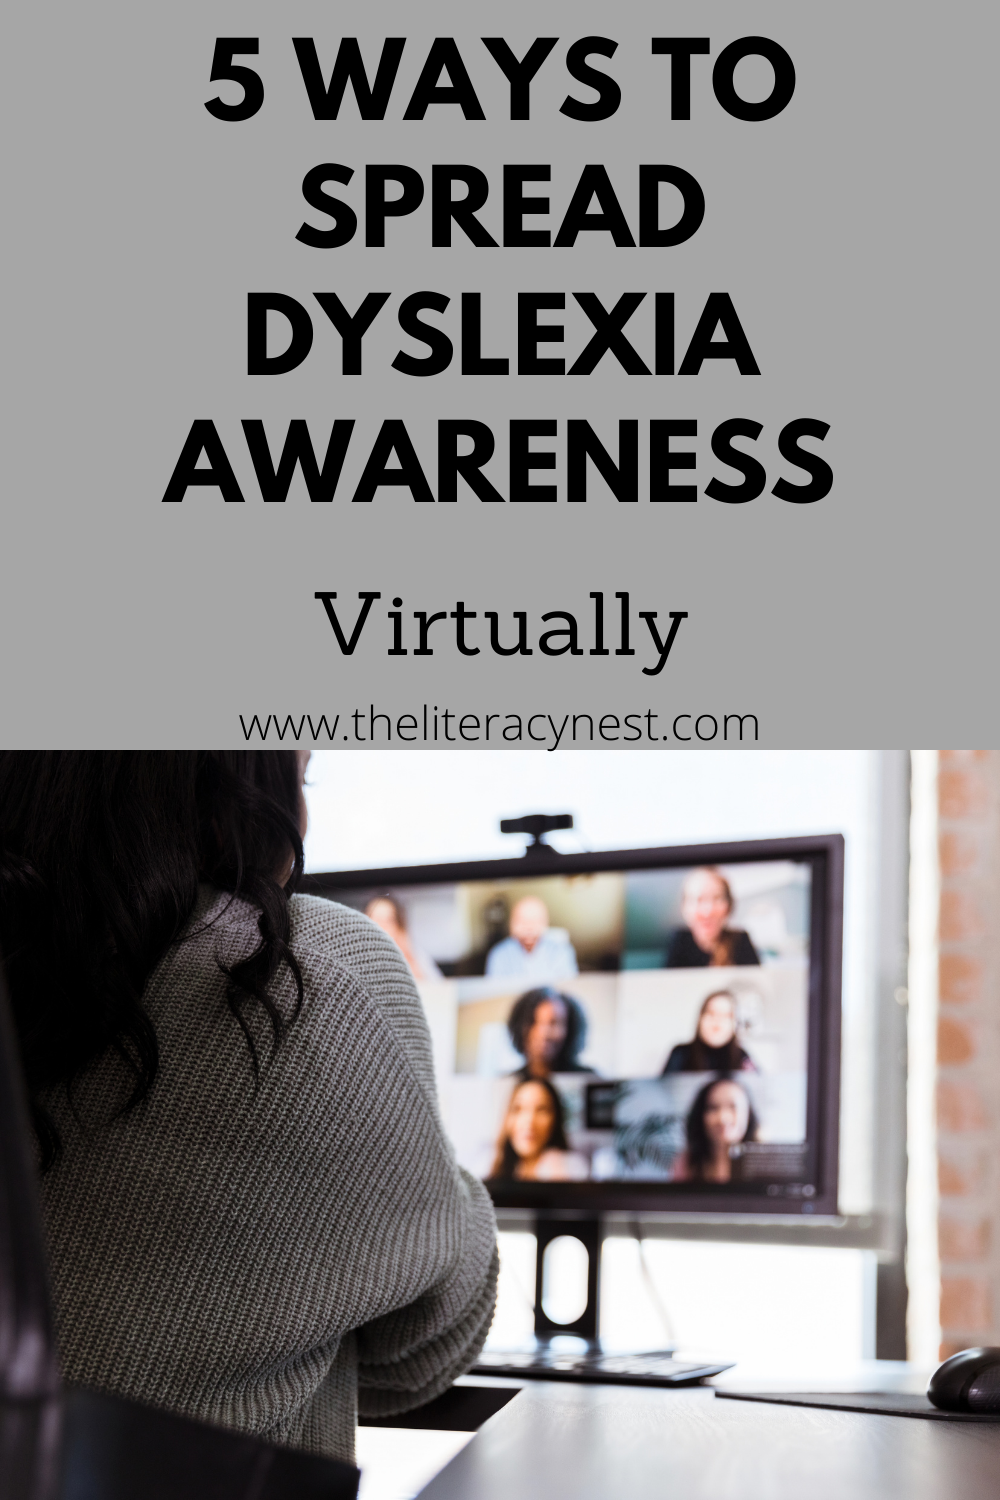 ways to spread dyslexia awareness virtually